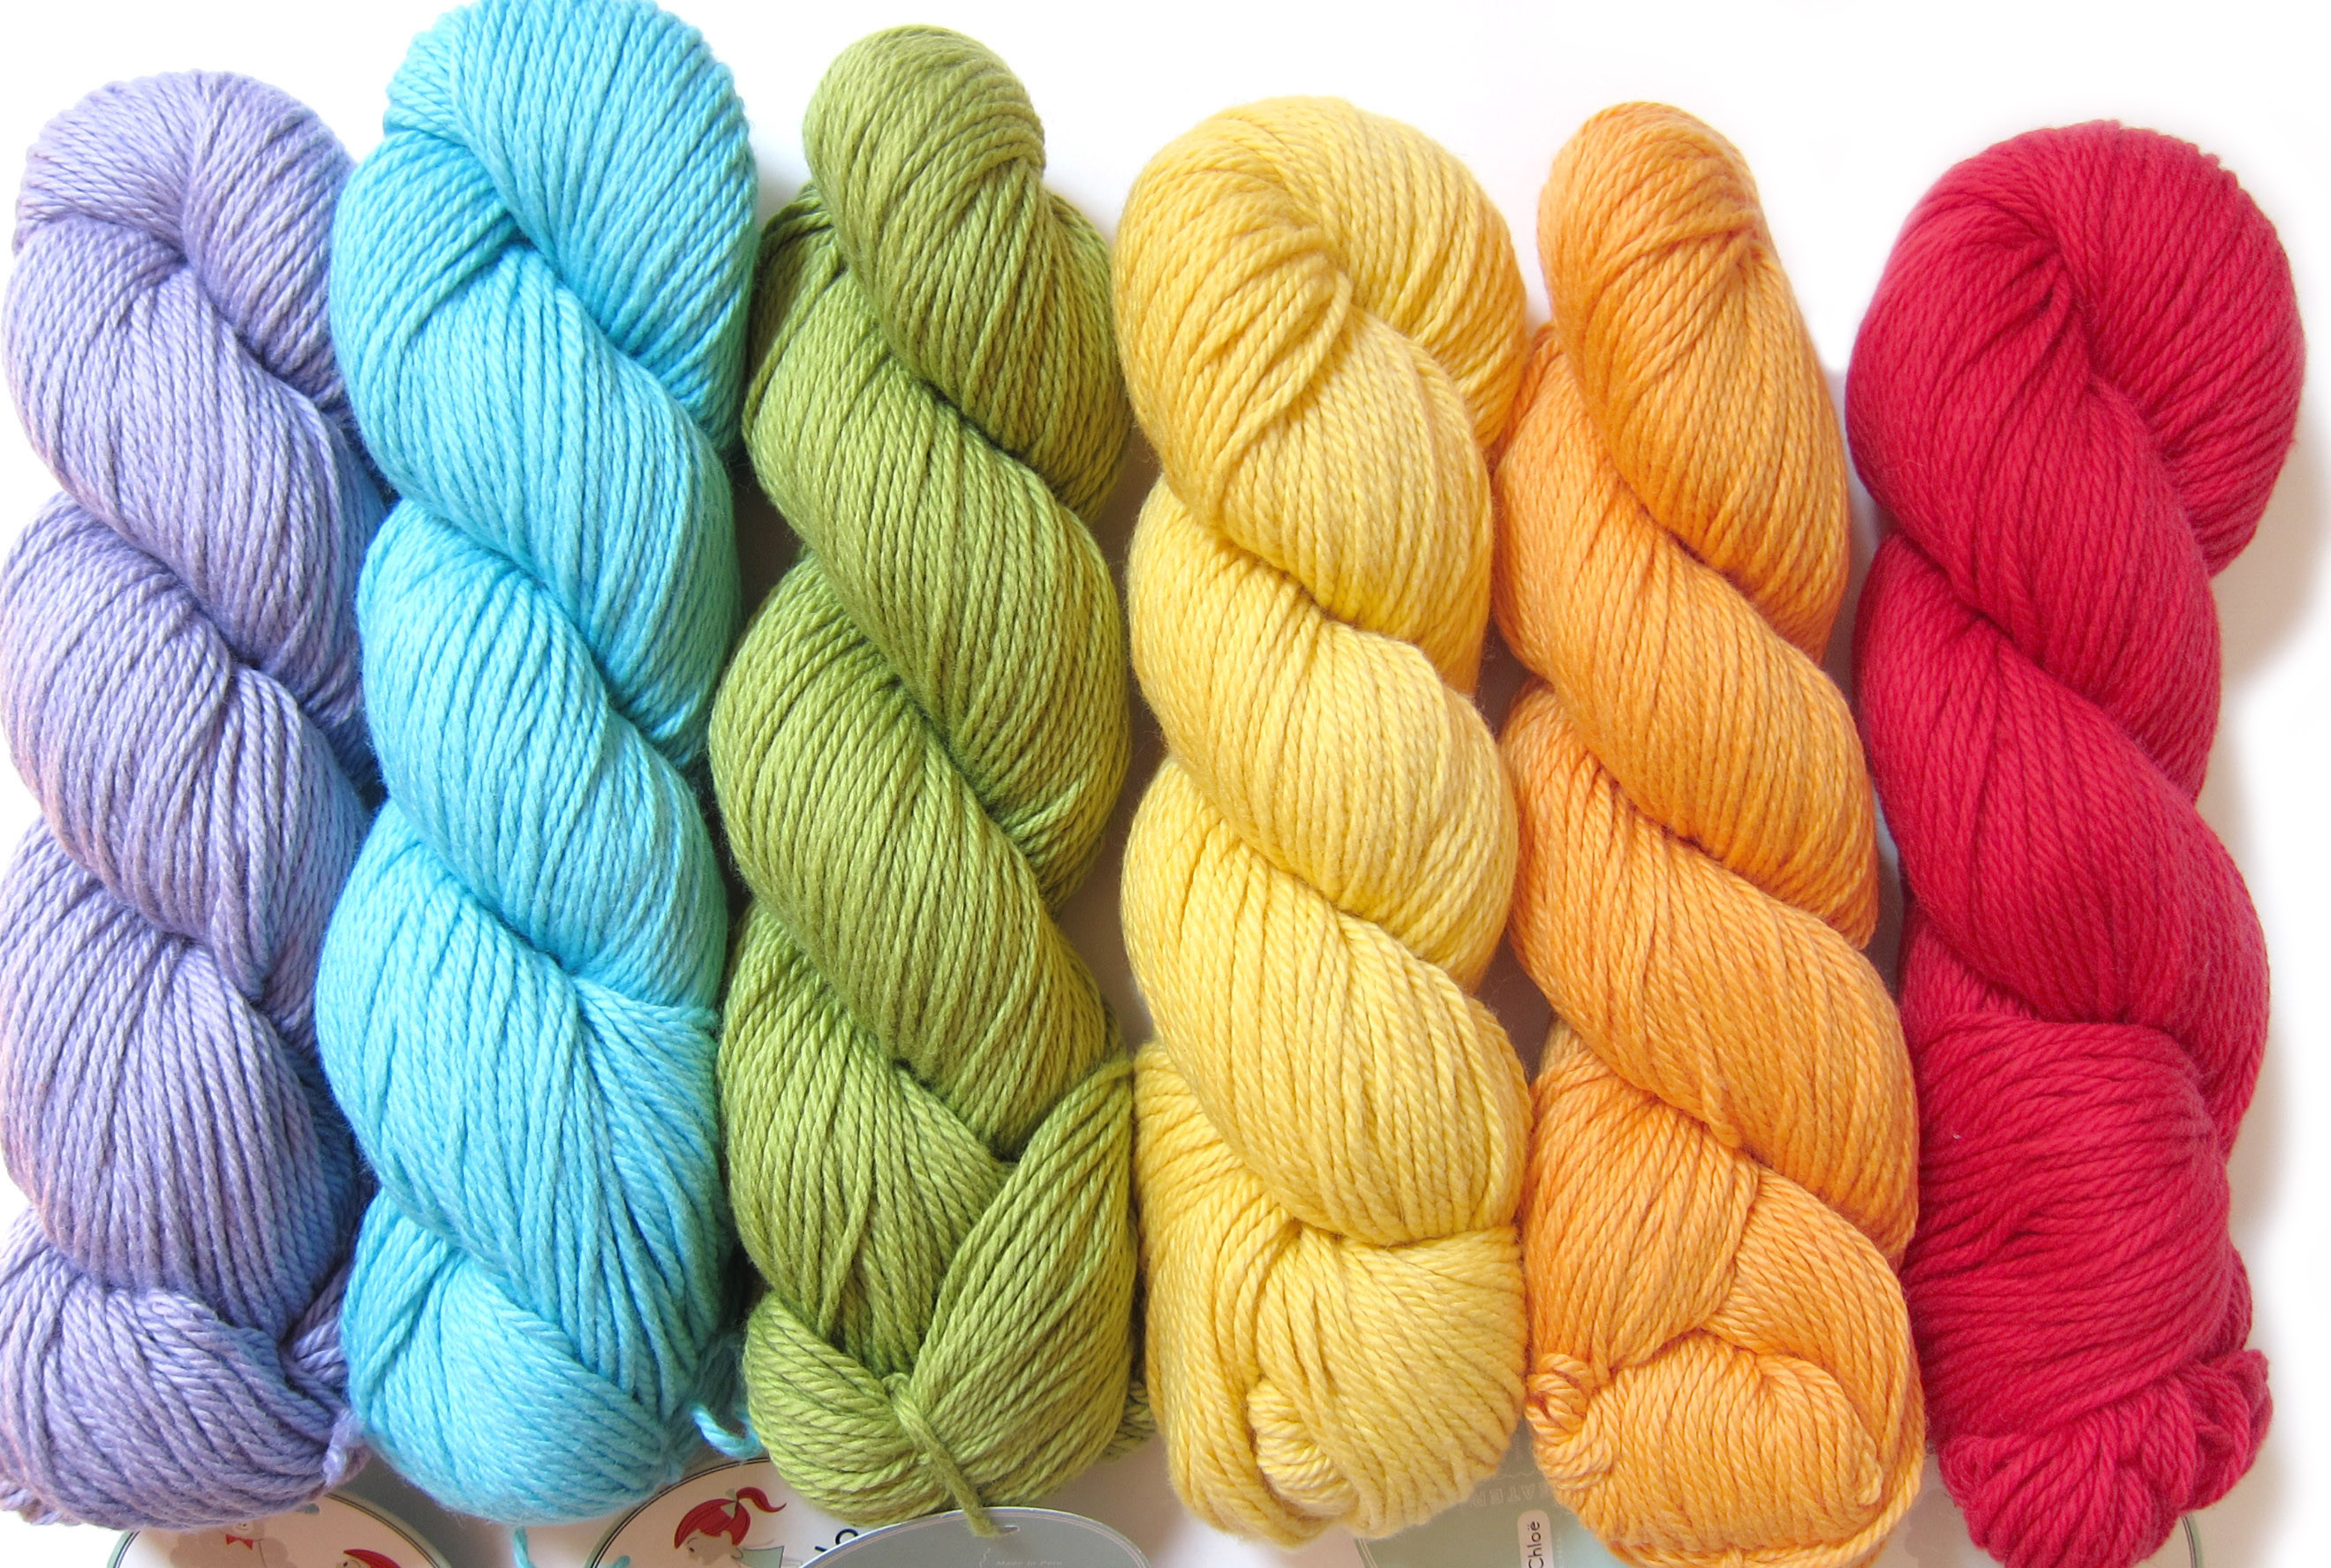 Yarns for my new book have arrived